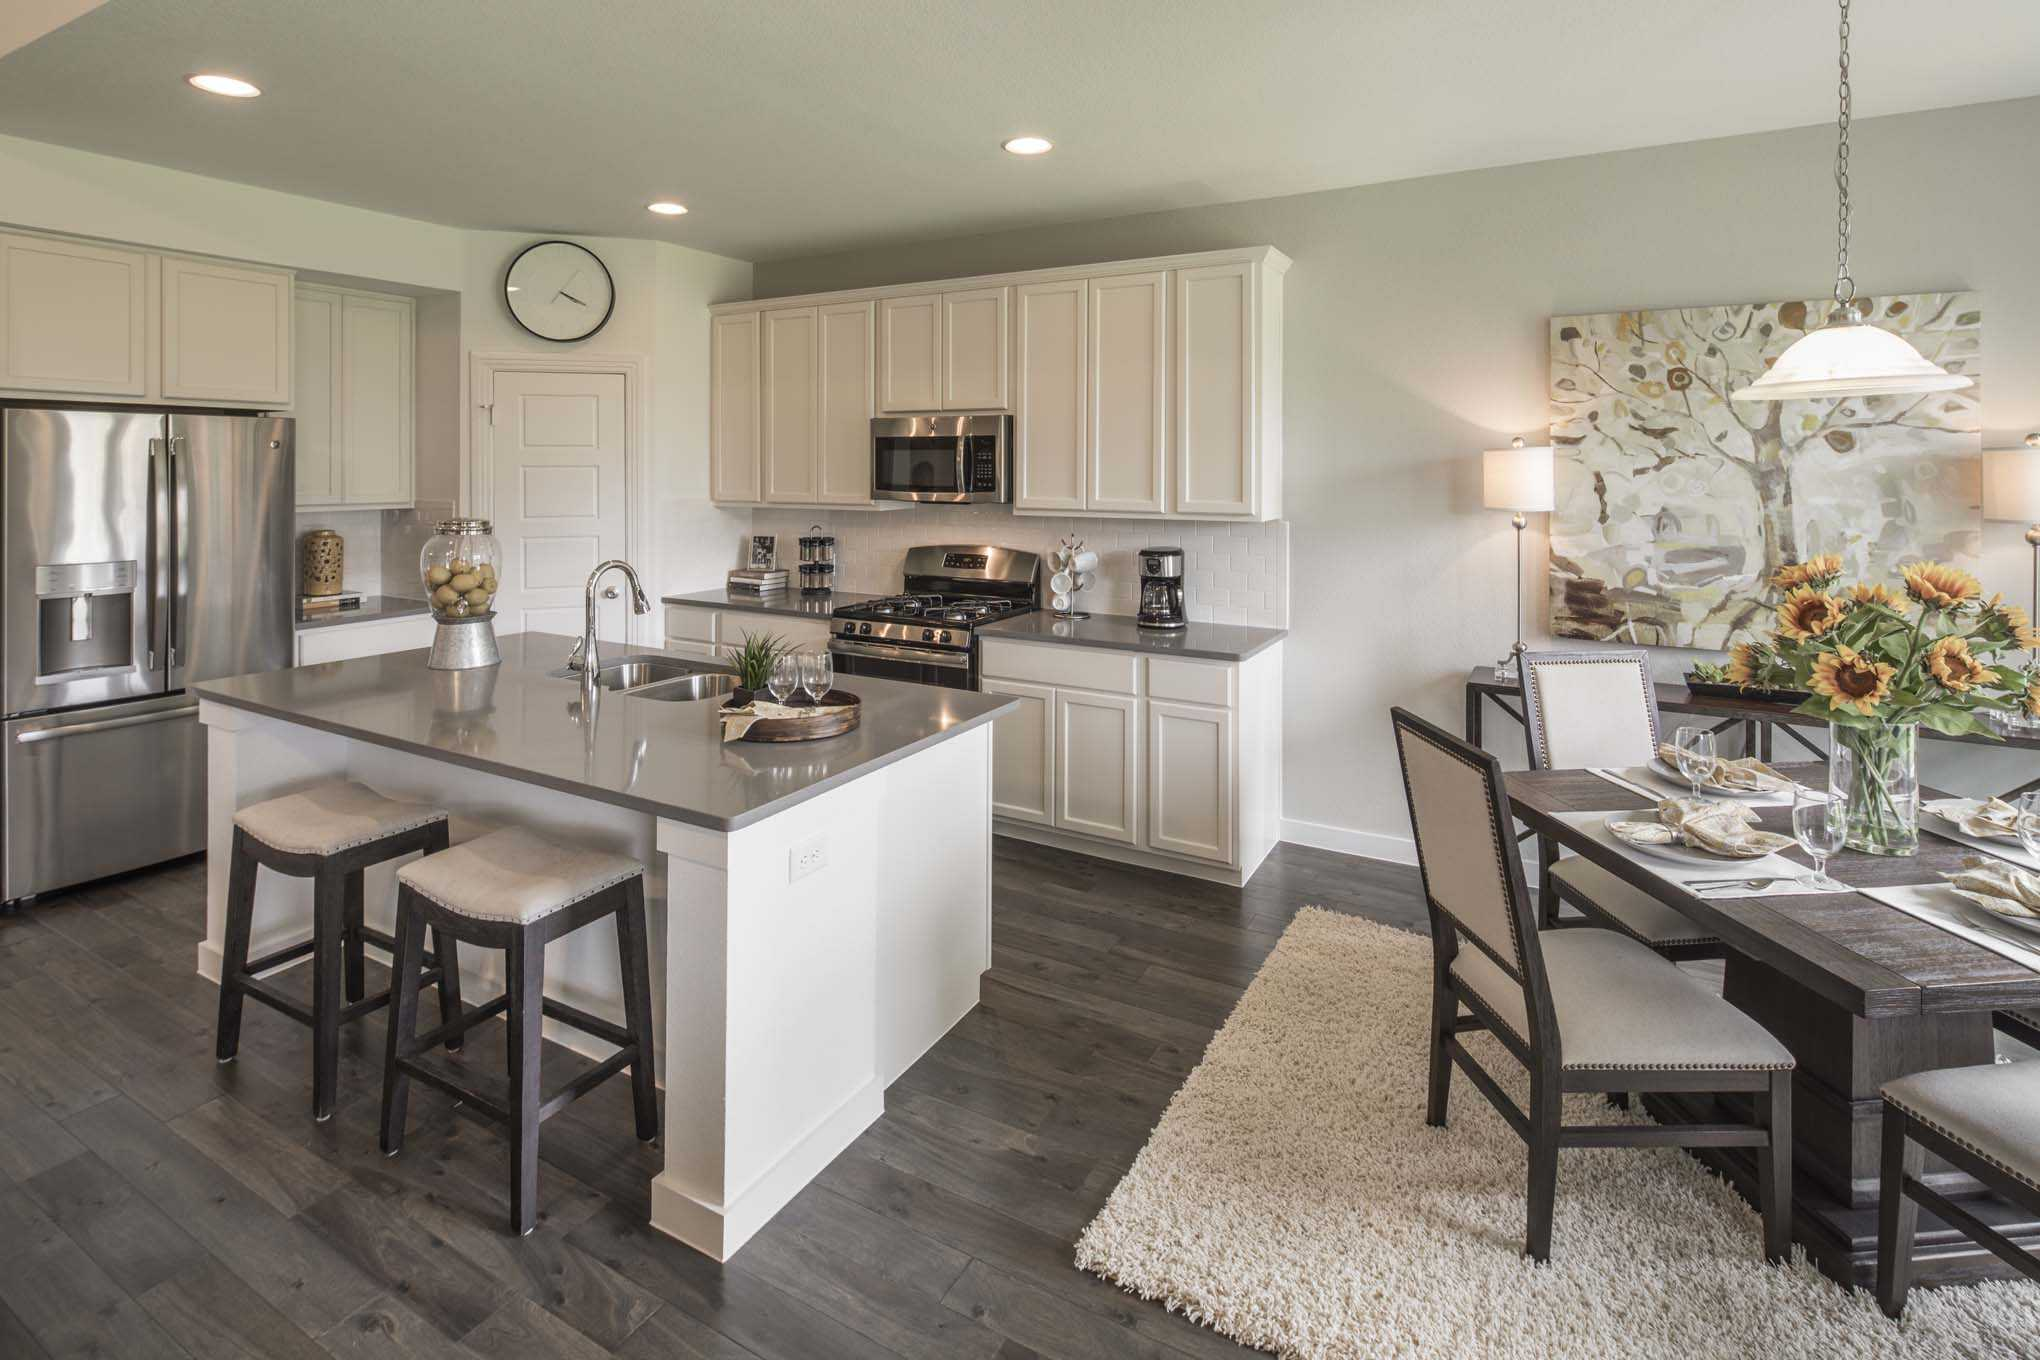 Kitchen featured in the Plan Westbury By Highland Homes in Dallas, TX